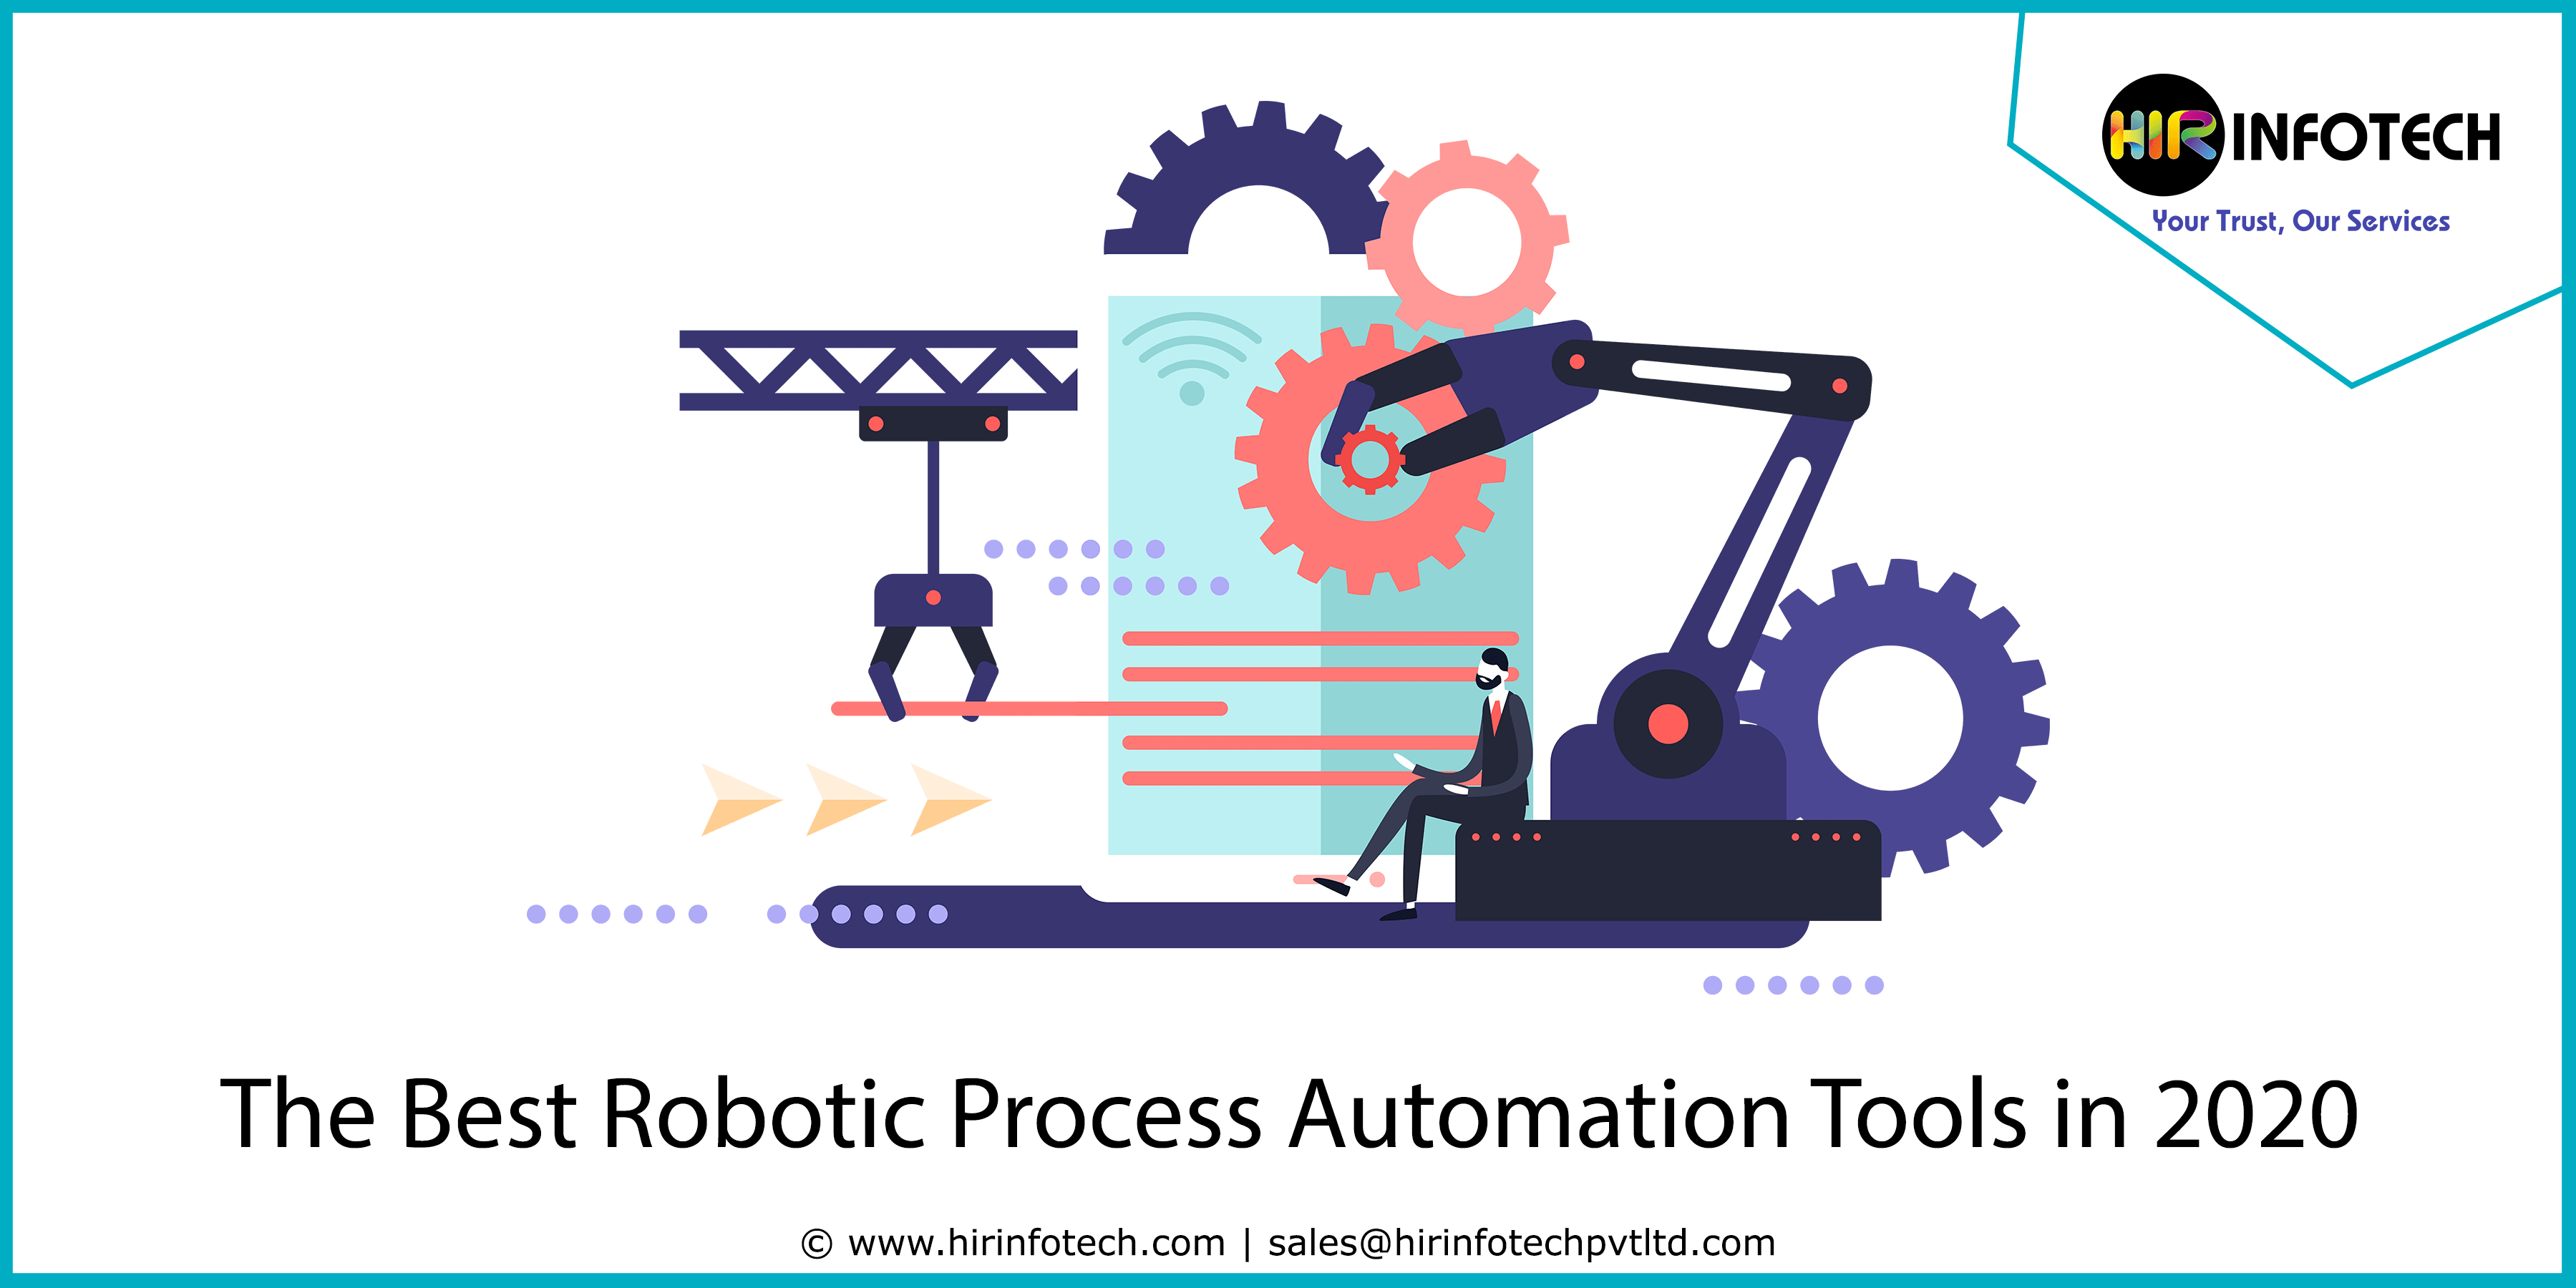 RPA, Robotics Process Automation, Business Process Automation, Automation, Tools